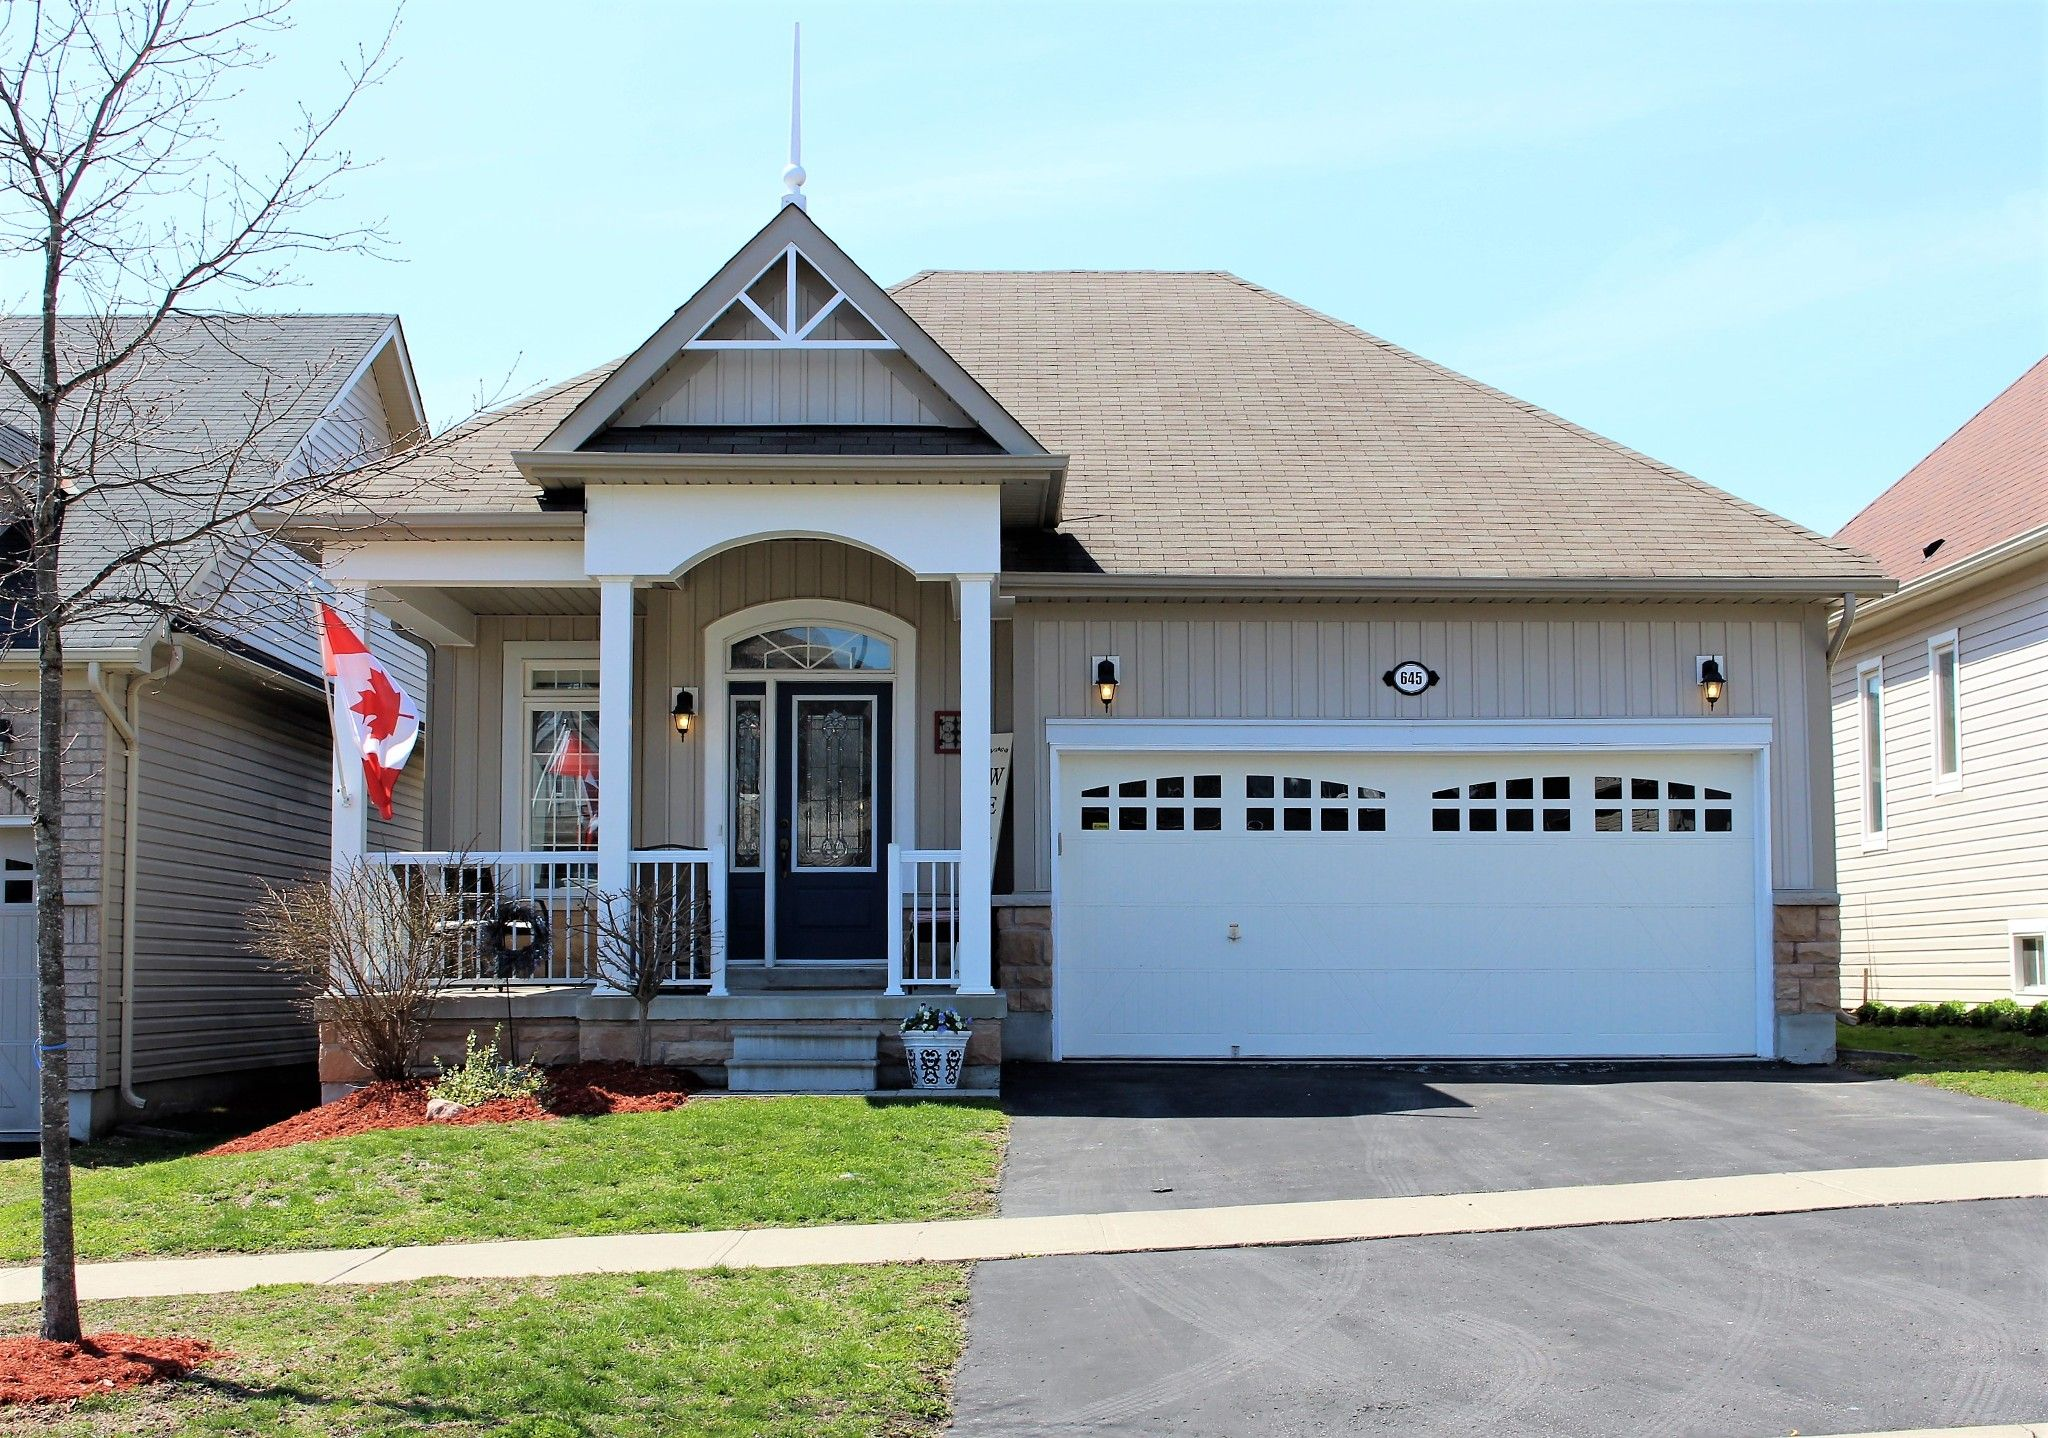 Main Photo: 645 Prince of Wales Drive in Cobourg: House for sale : MLS®# X5206274